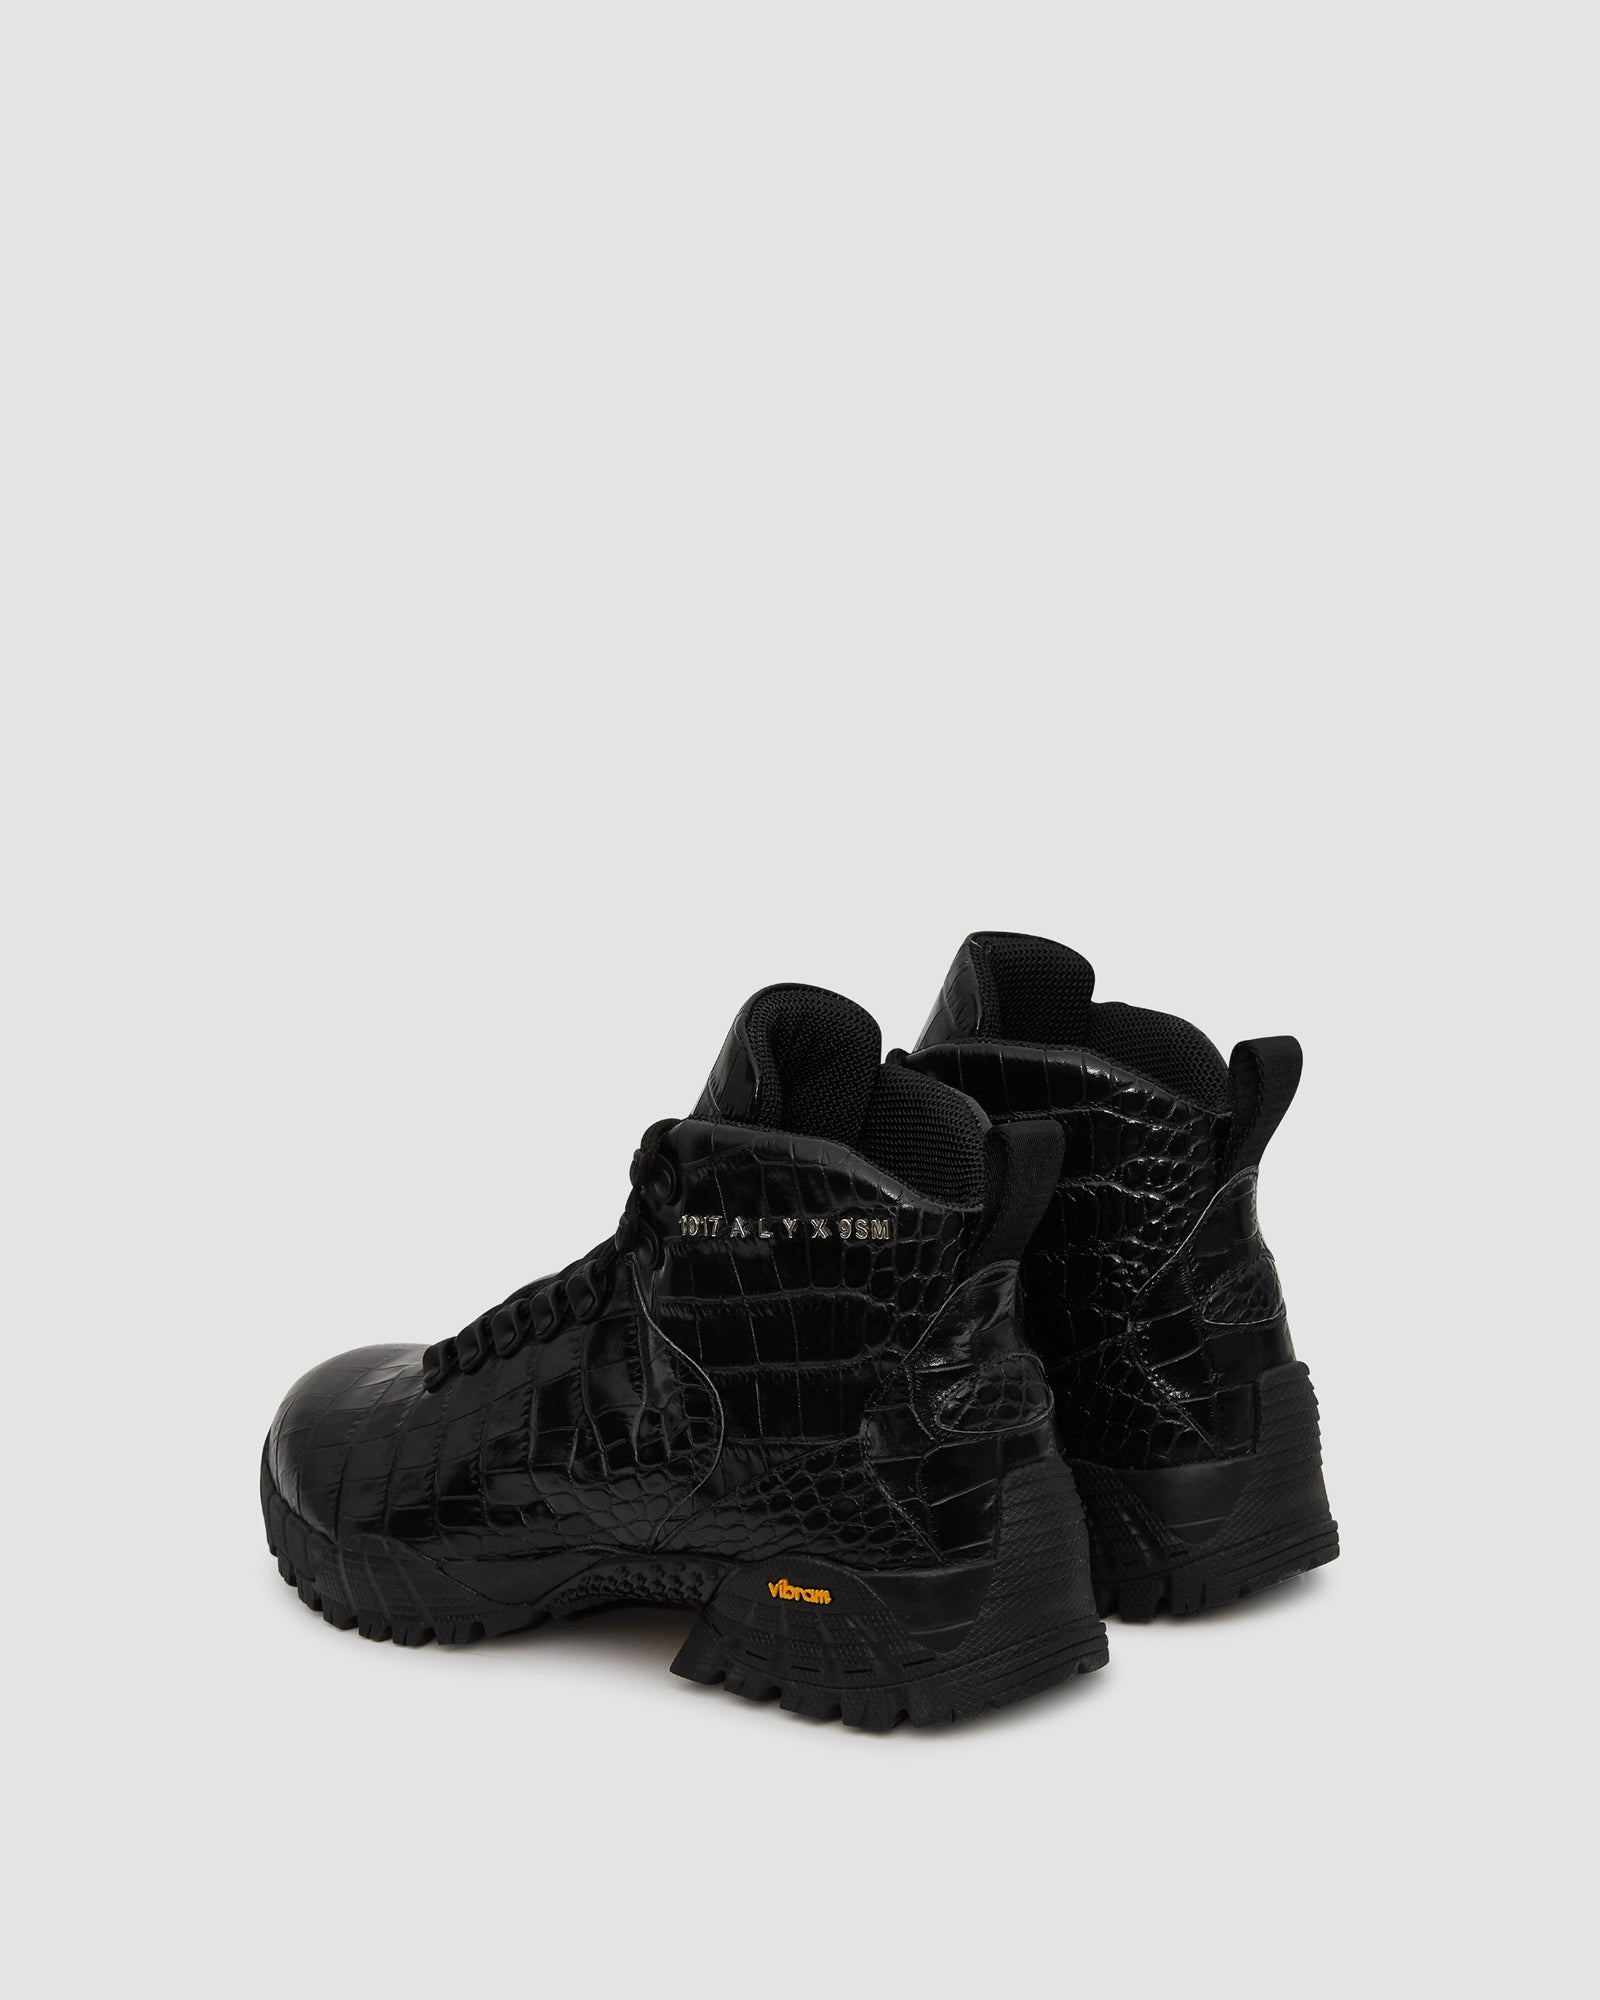 1017 ALYX 9SM | HIKING BOOT | Shoe | BLACK, BOOTS, Google Shopping, Man, S20, Shoes, SS20, UNISEX, Woman